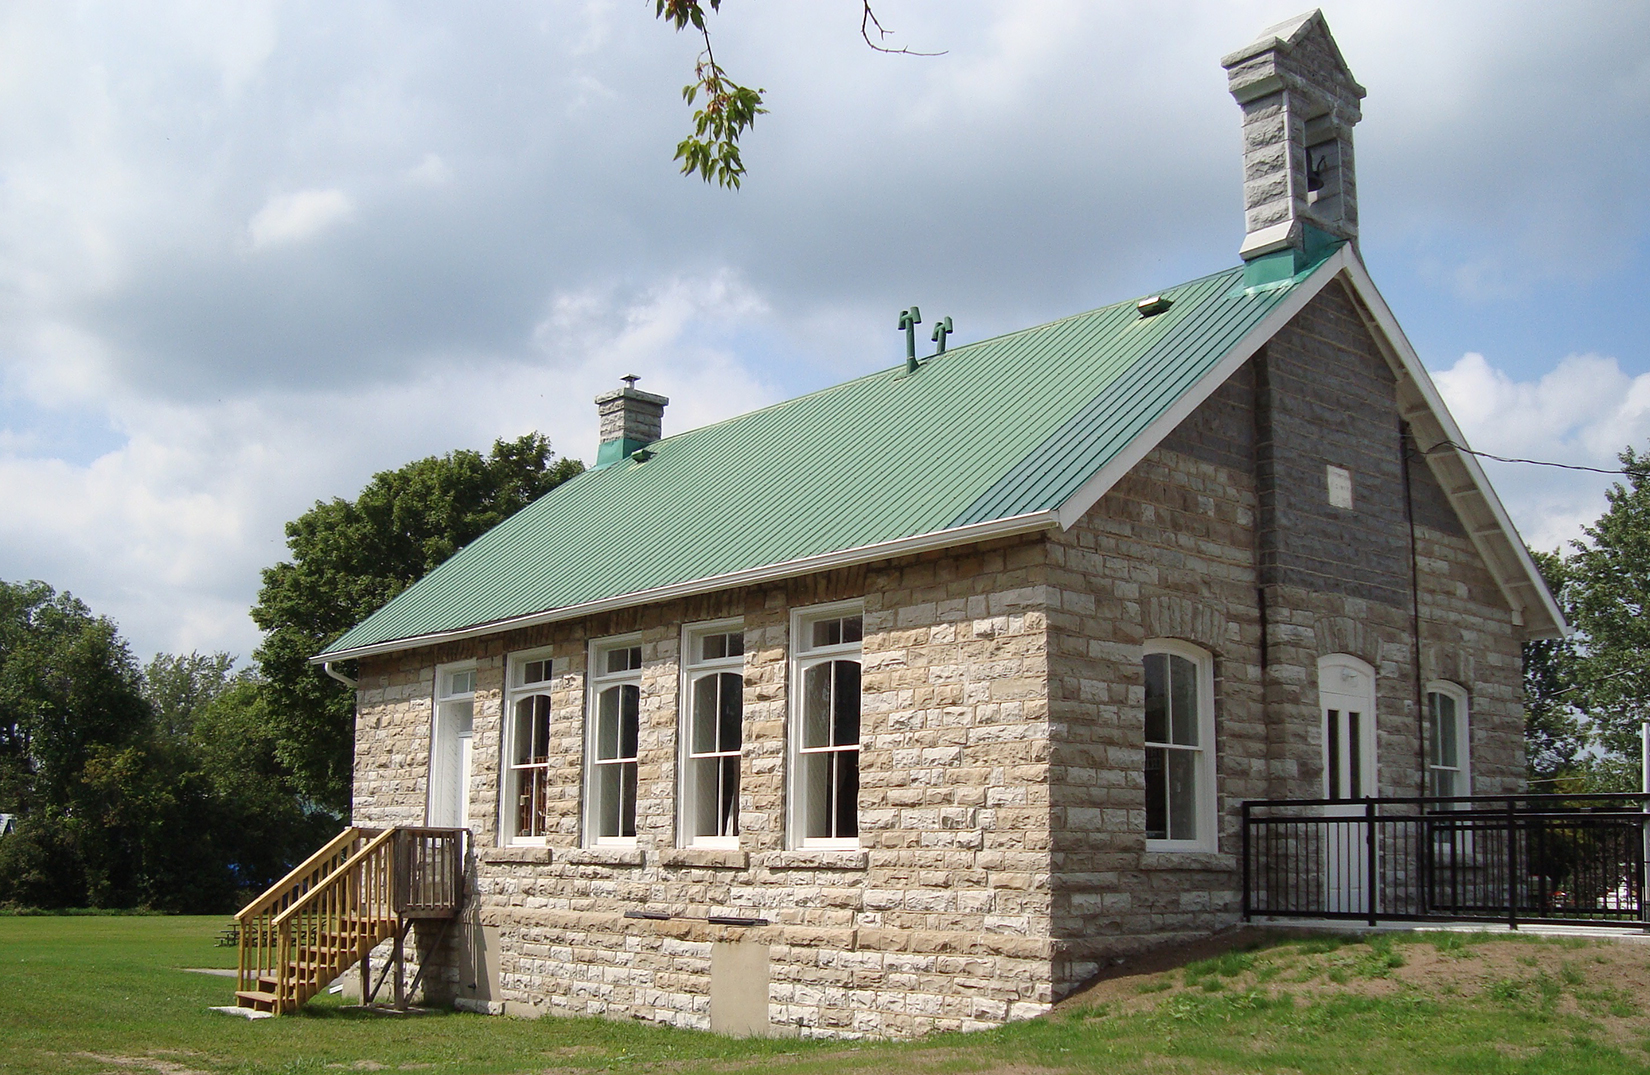 South Frontenac Museum, Hartington, Ontario